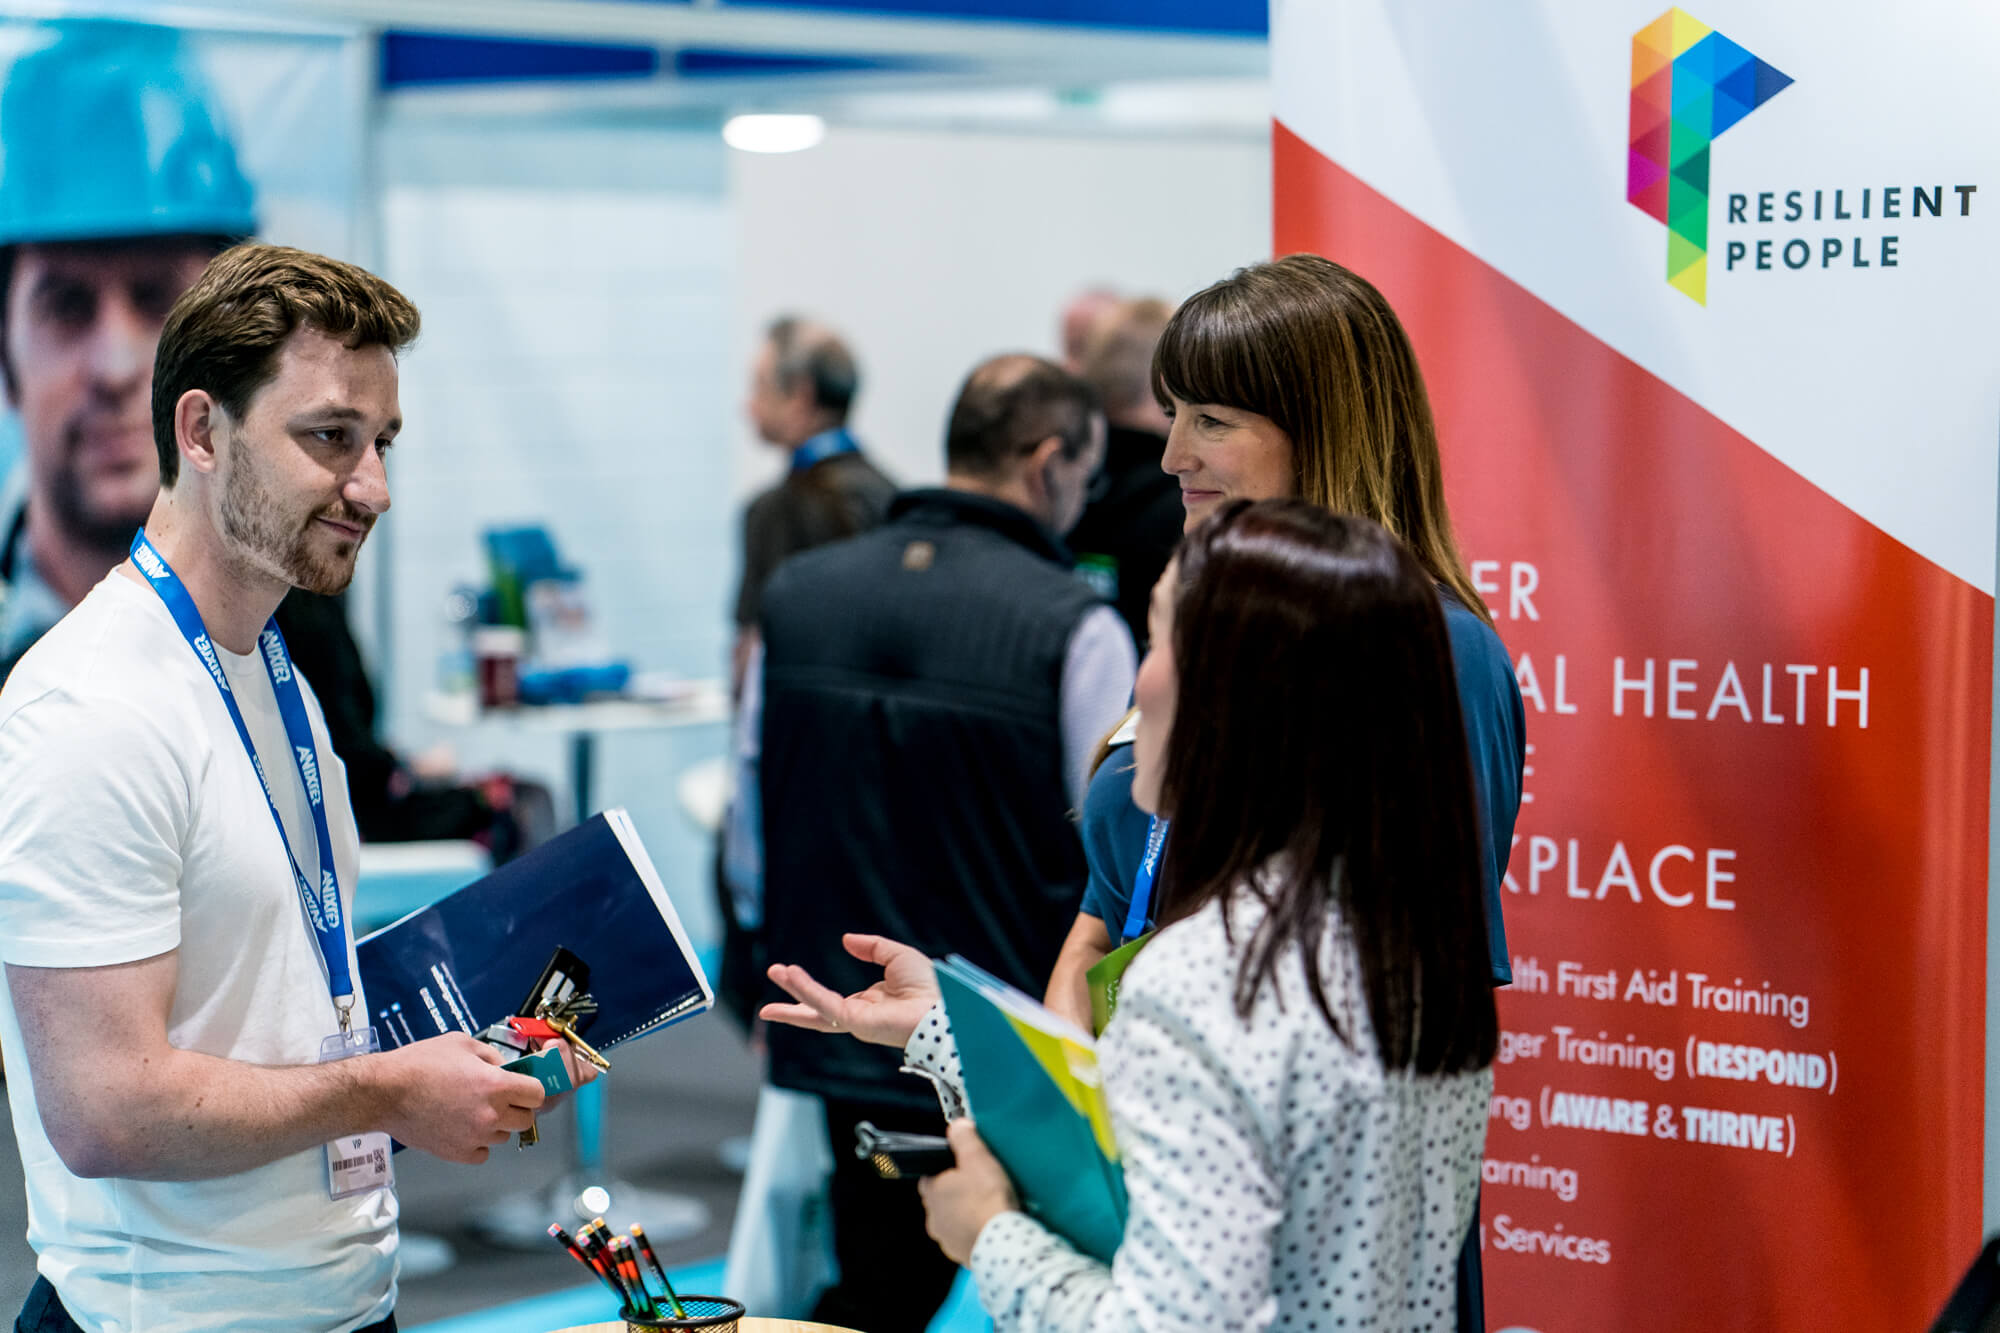 A visitor meeting exhibitors at Safety & Health Expo 2019